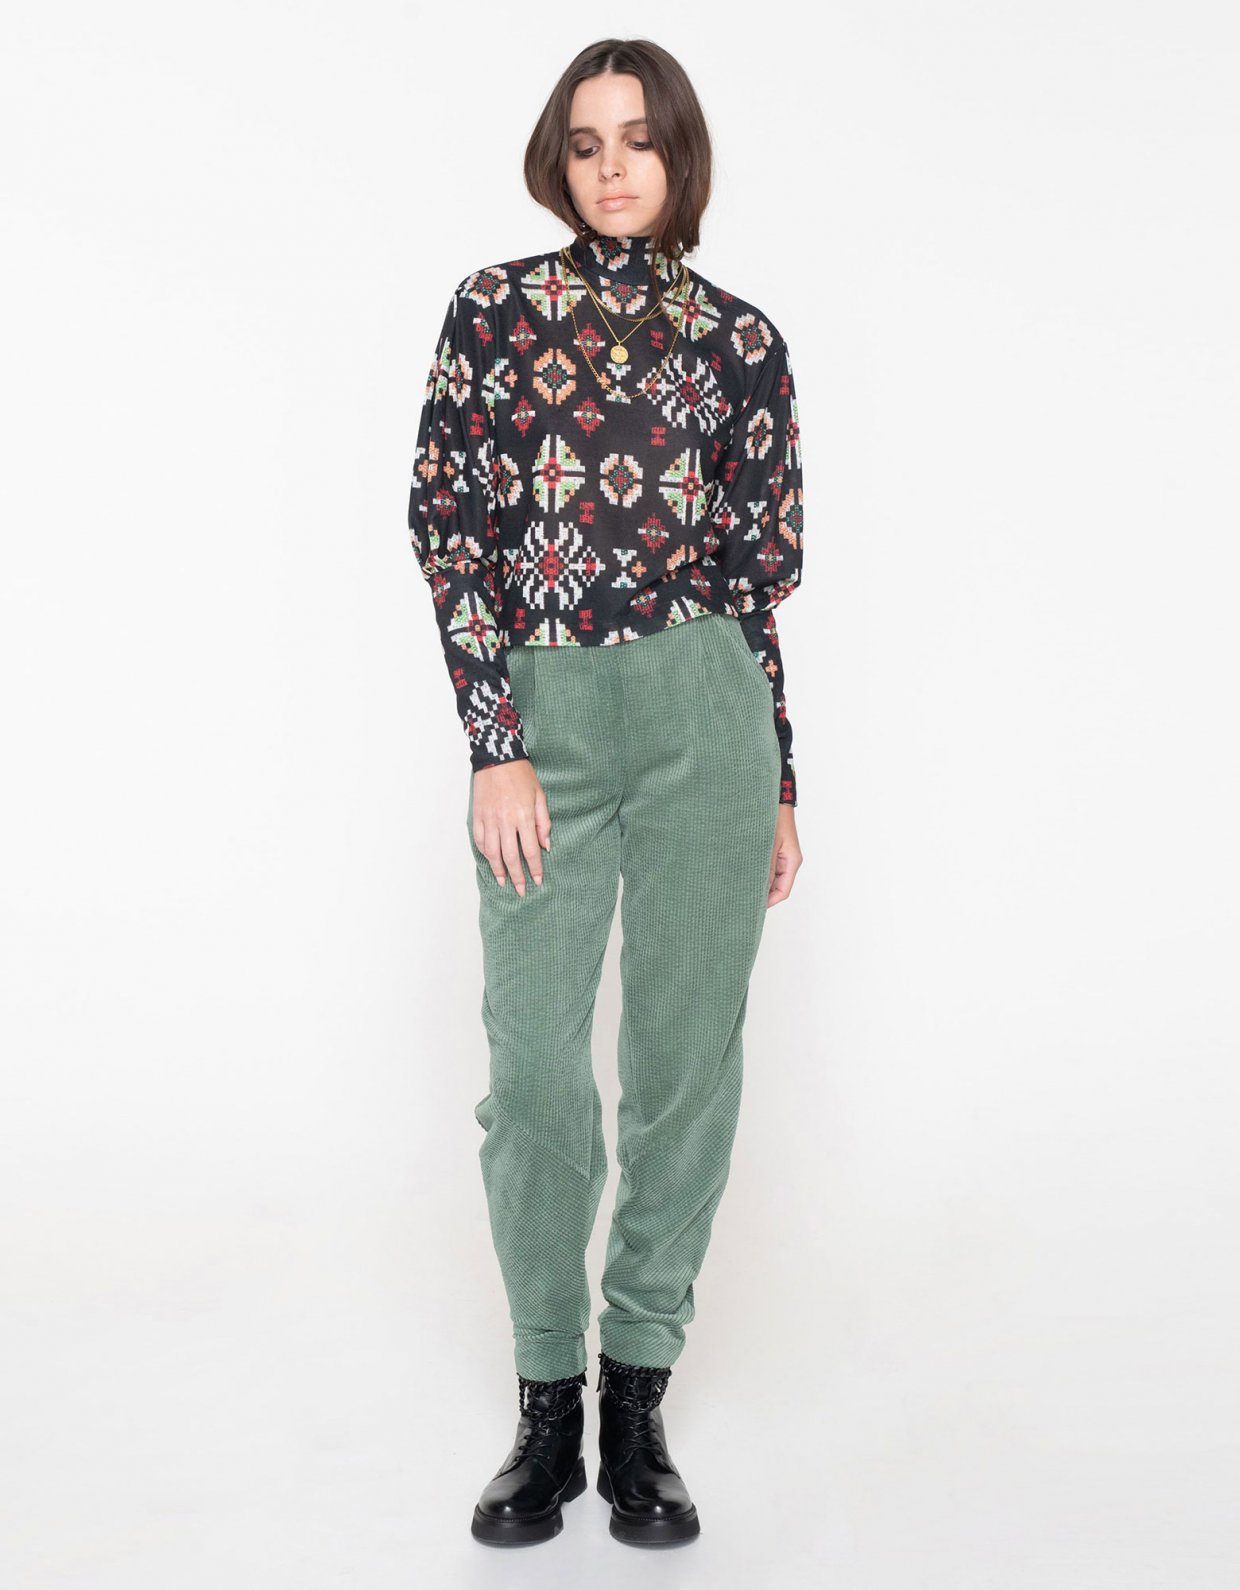 Nadia Rapti R.E.M. turtleneck top